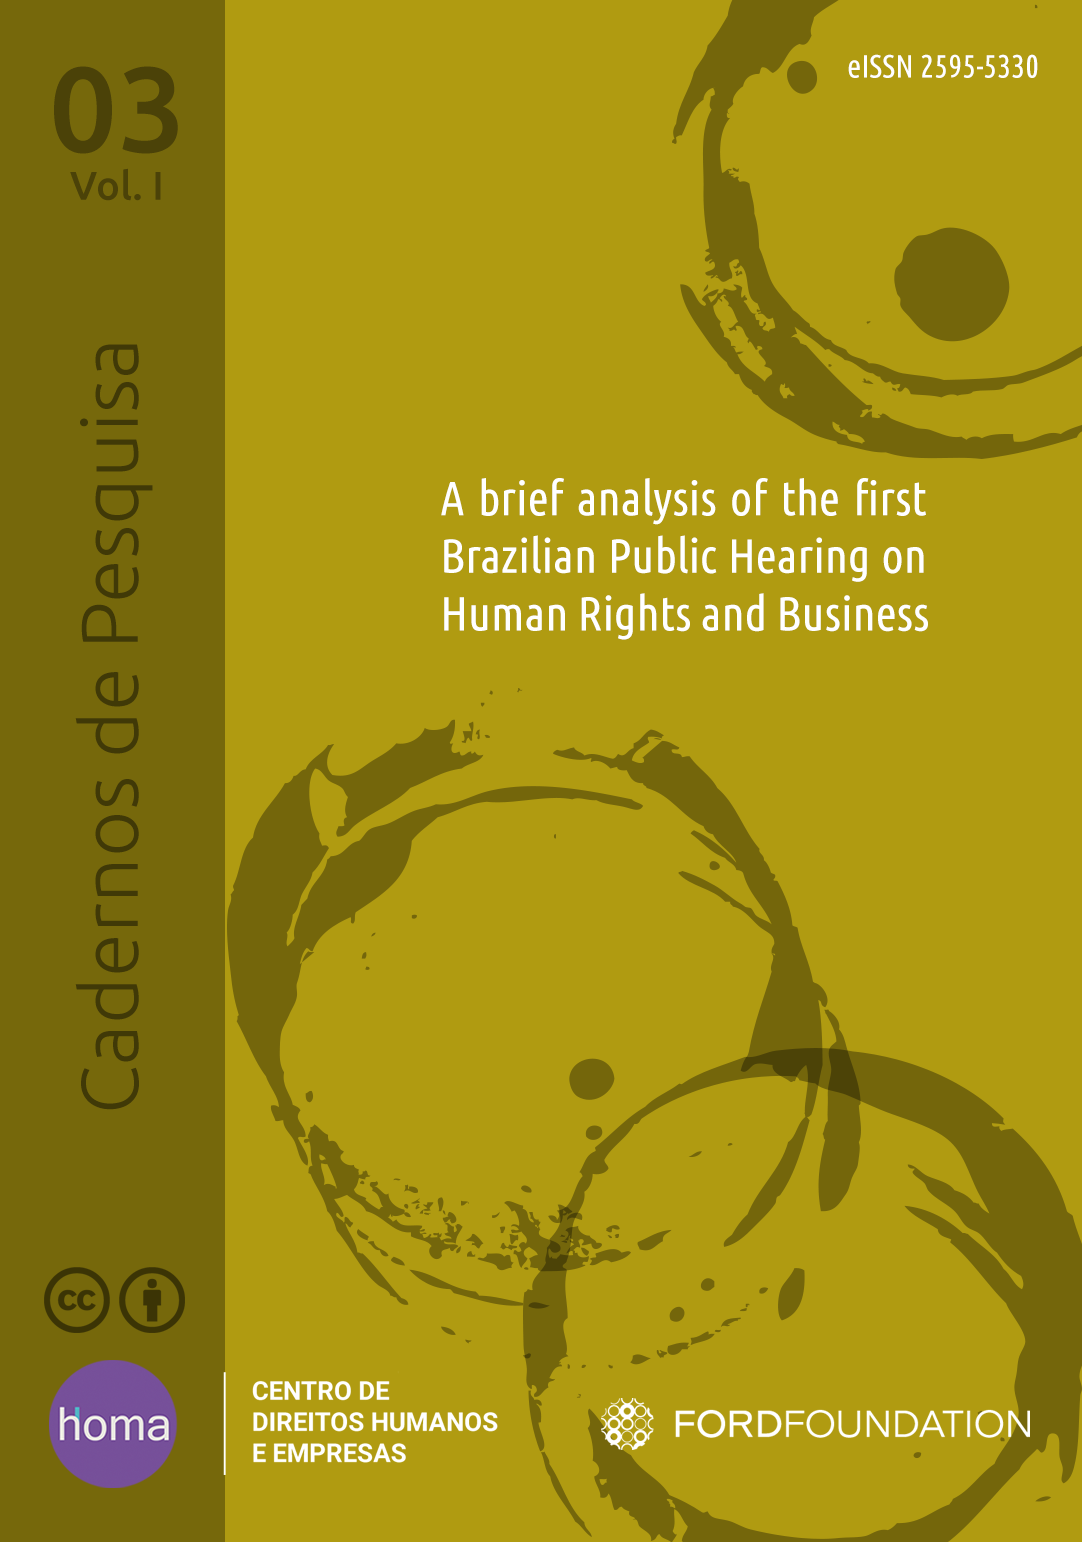 A brief analysis oh the first Bazilian Public Hearing on Human Rights and Bsuiness